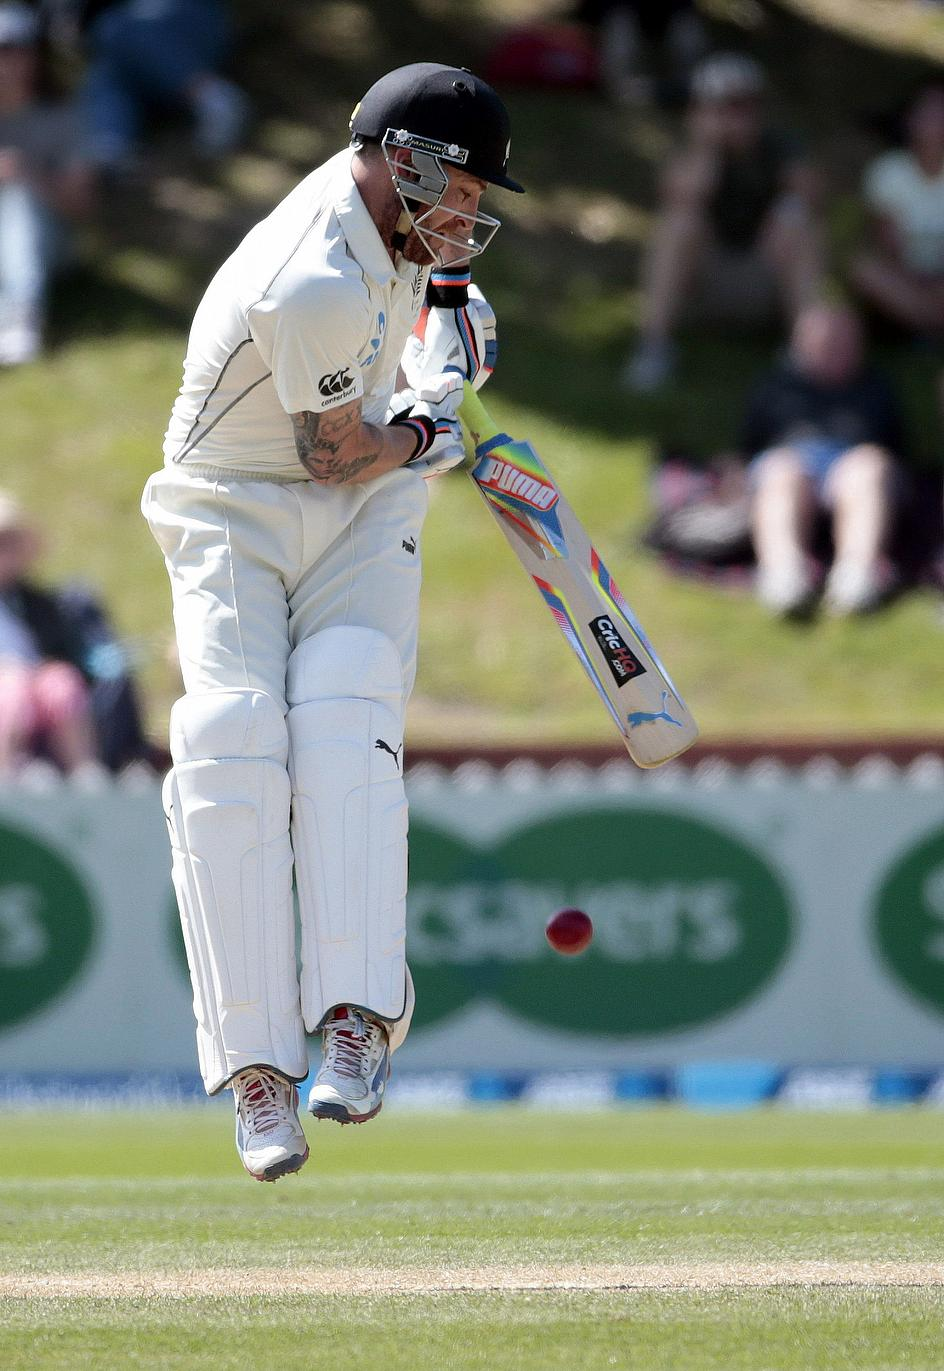 Brendon McCullum plays a leg-side shot